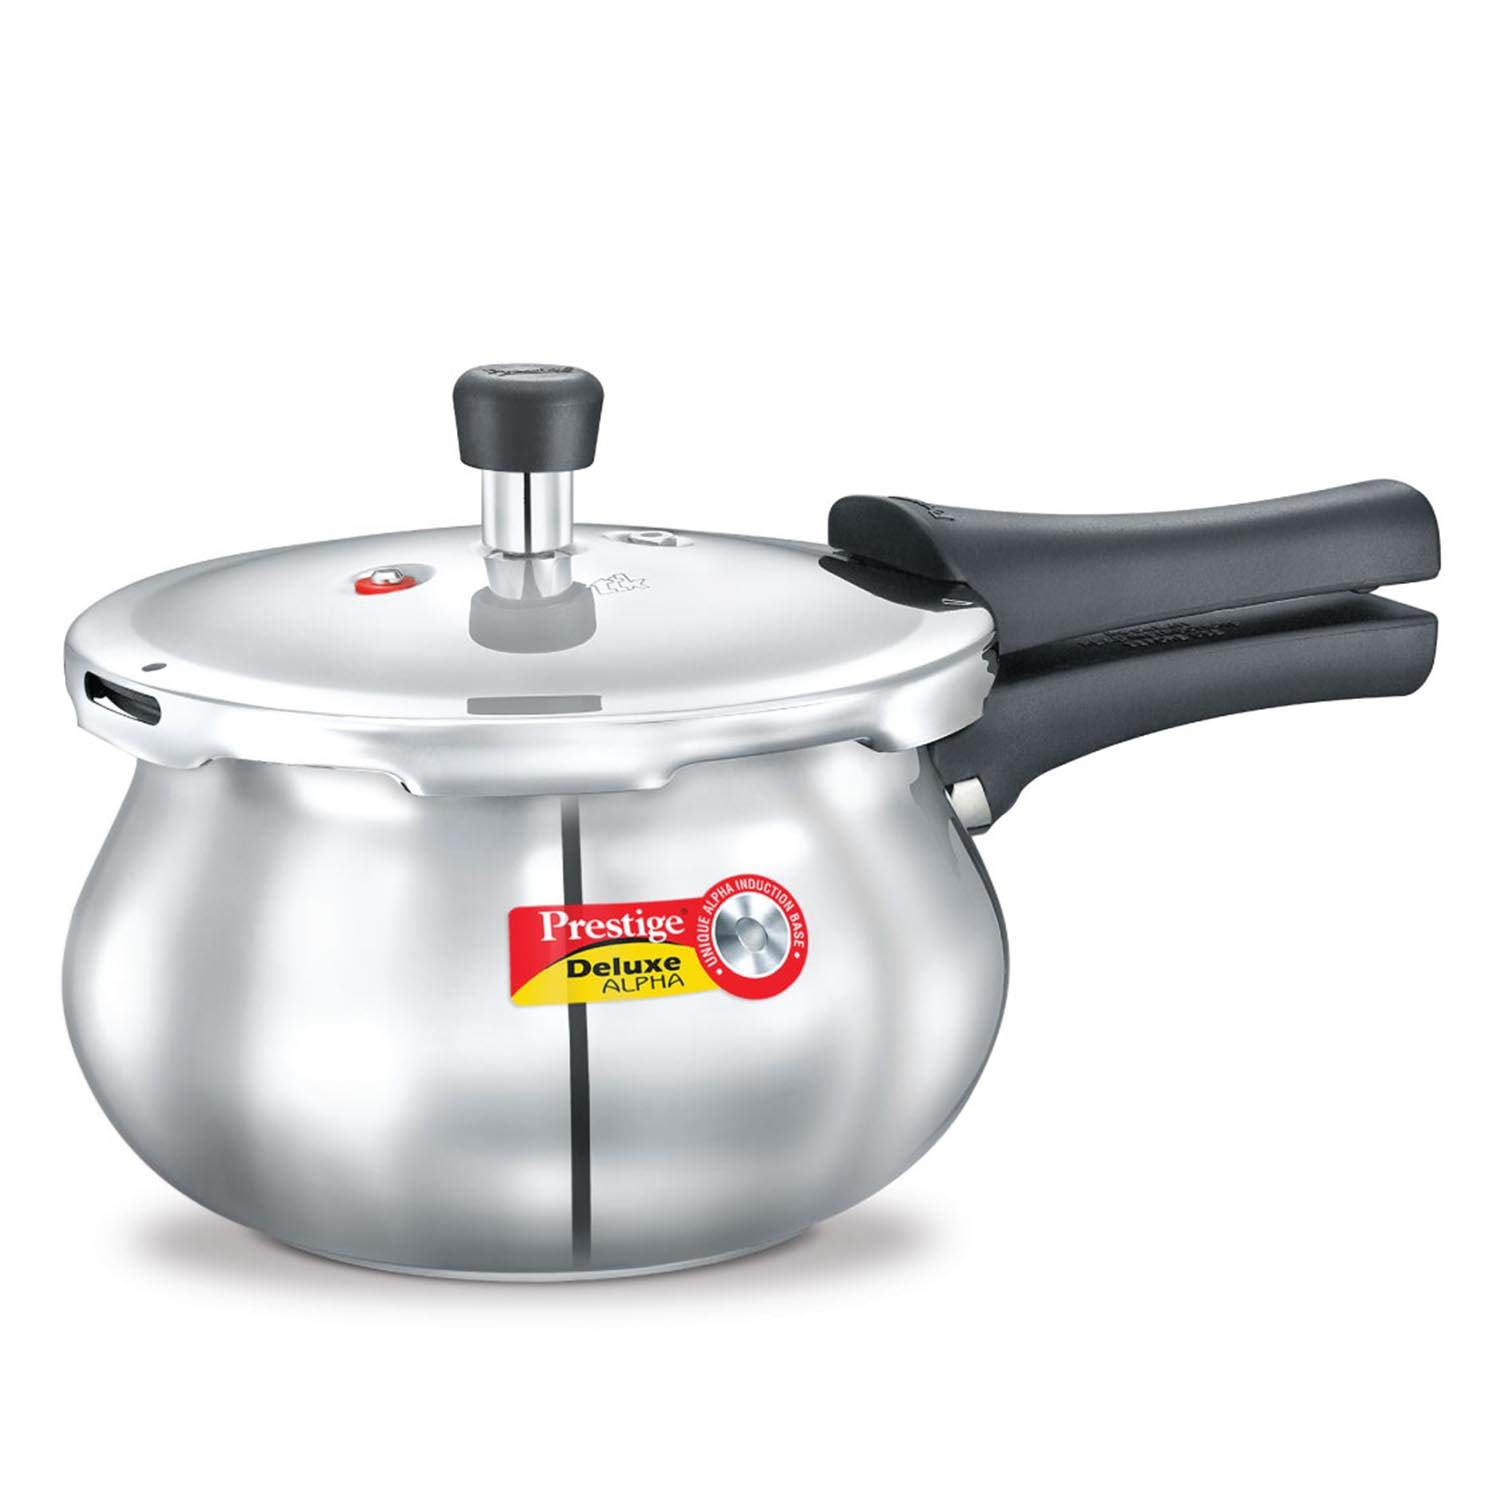 Prestige 2-Liter Deluxe Alpha Induction Base Stainless Steel Baby Handi, Small, Silver